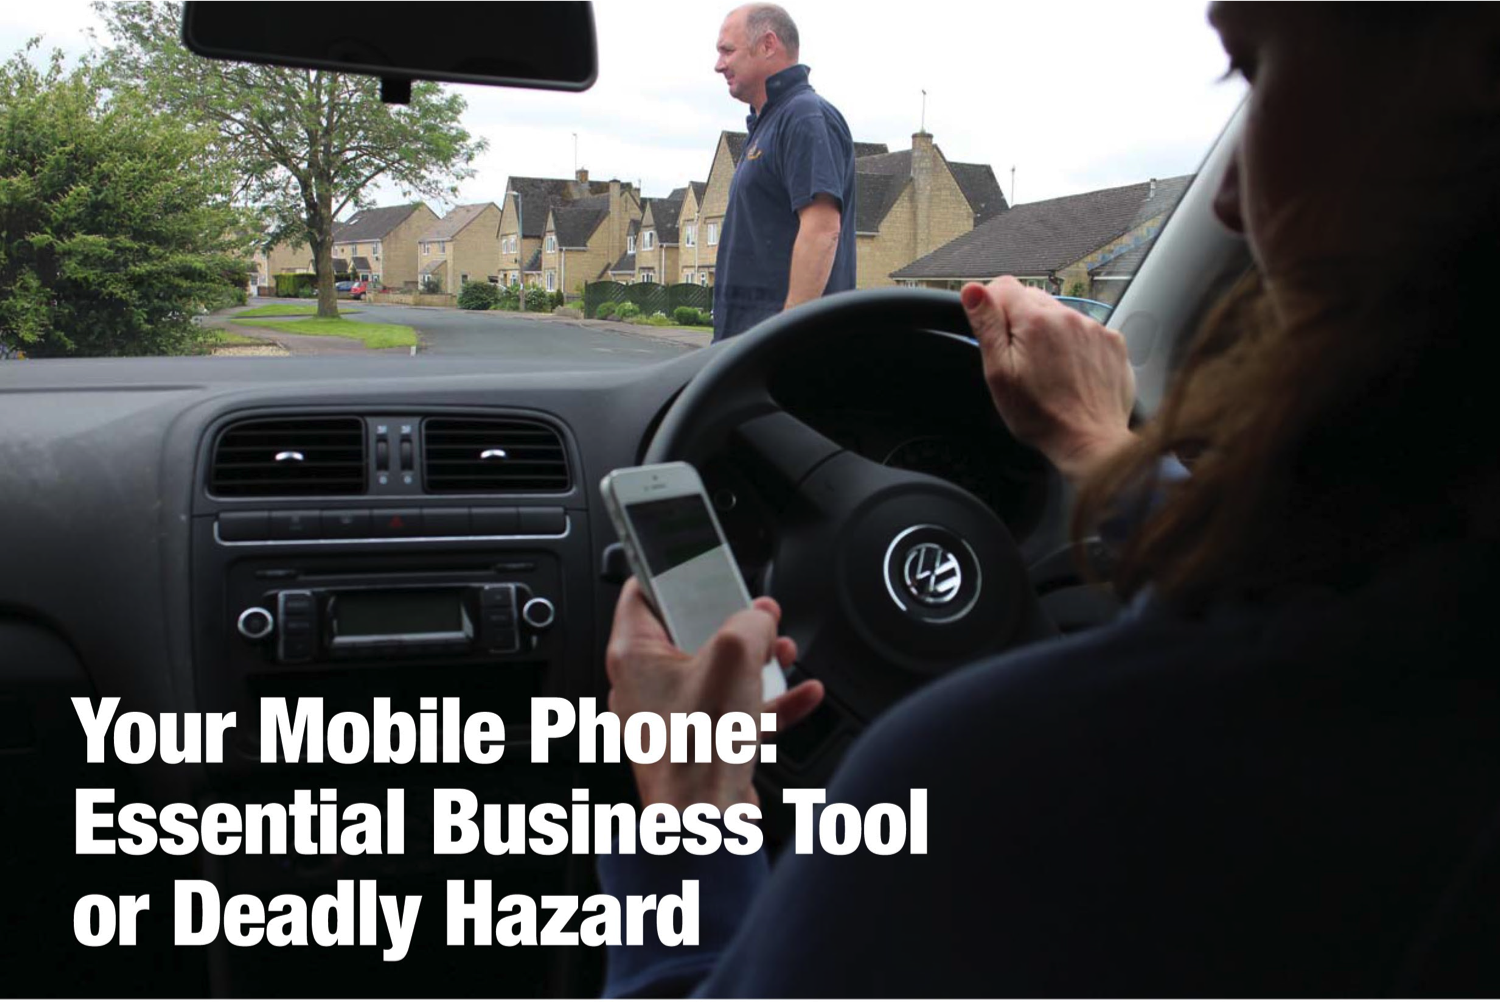 Your mobile phone: essential business tool or deadly hazard?